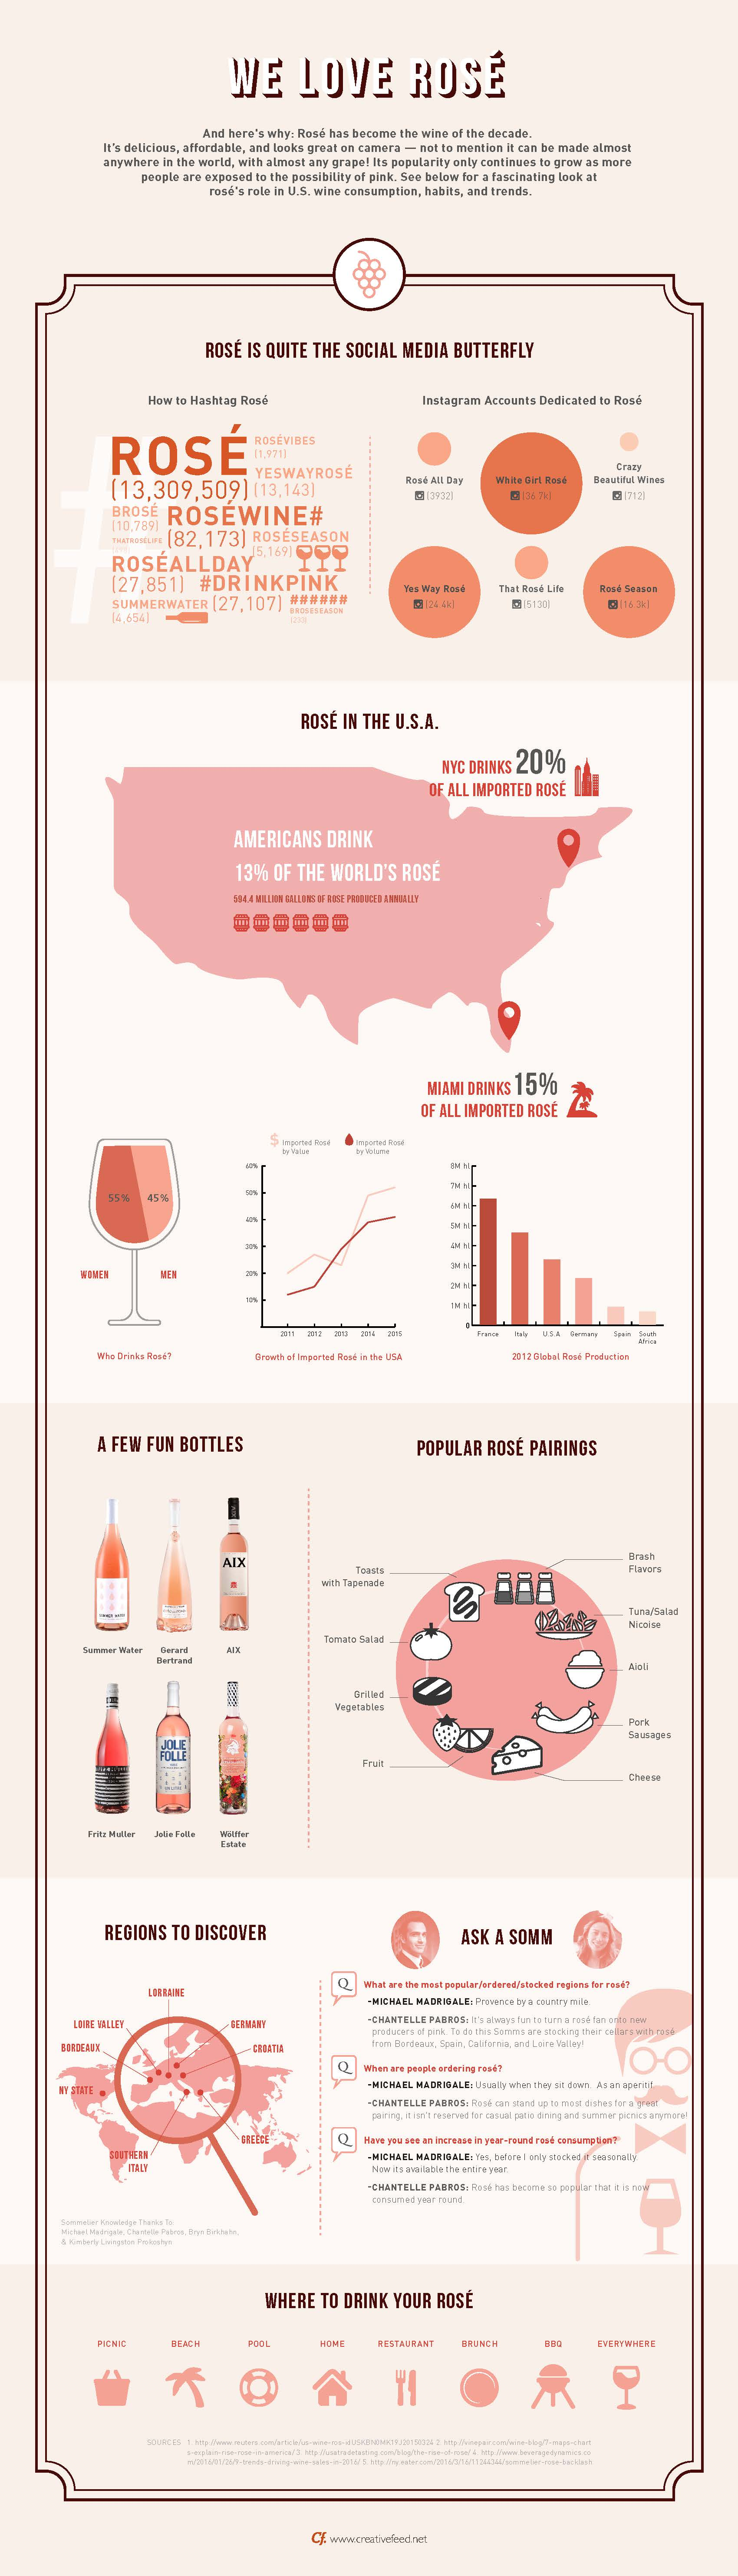 CreativeFeed_Rose_Infographic.jpg